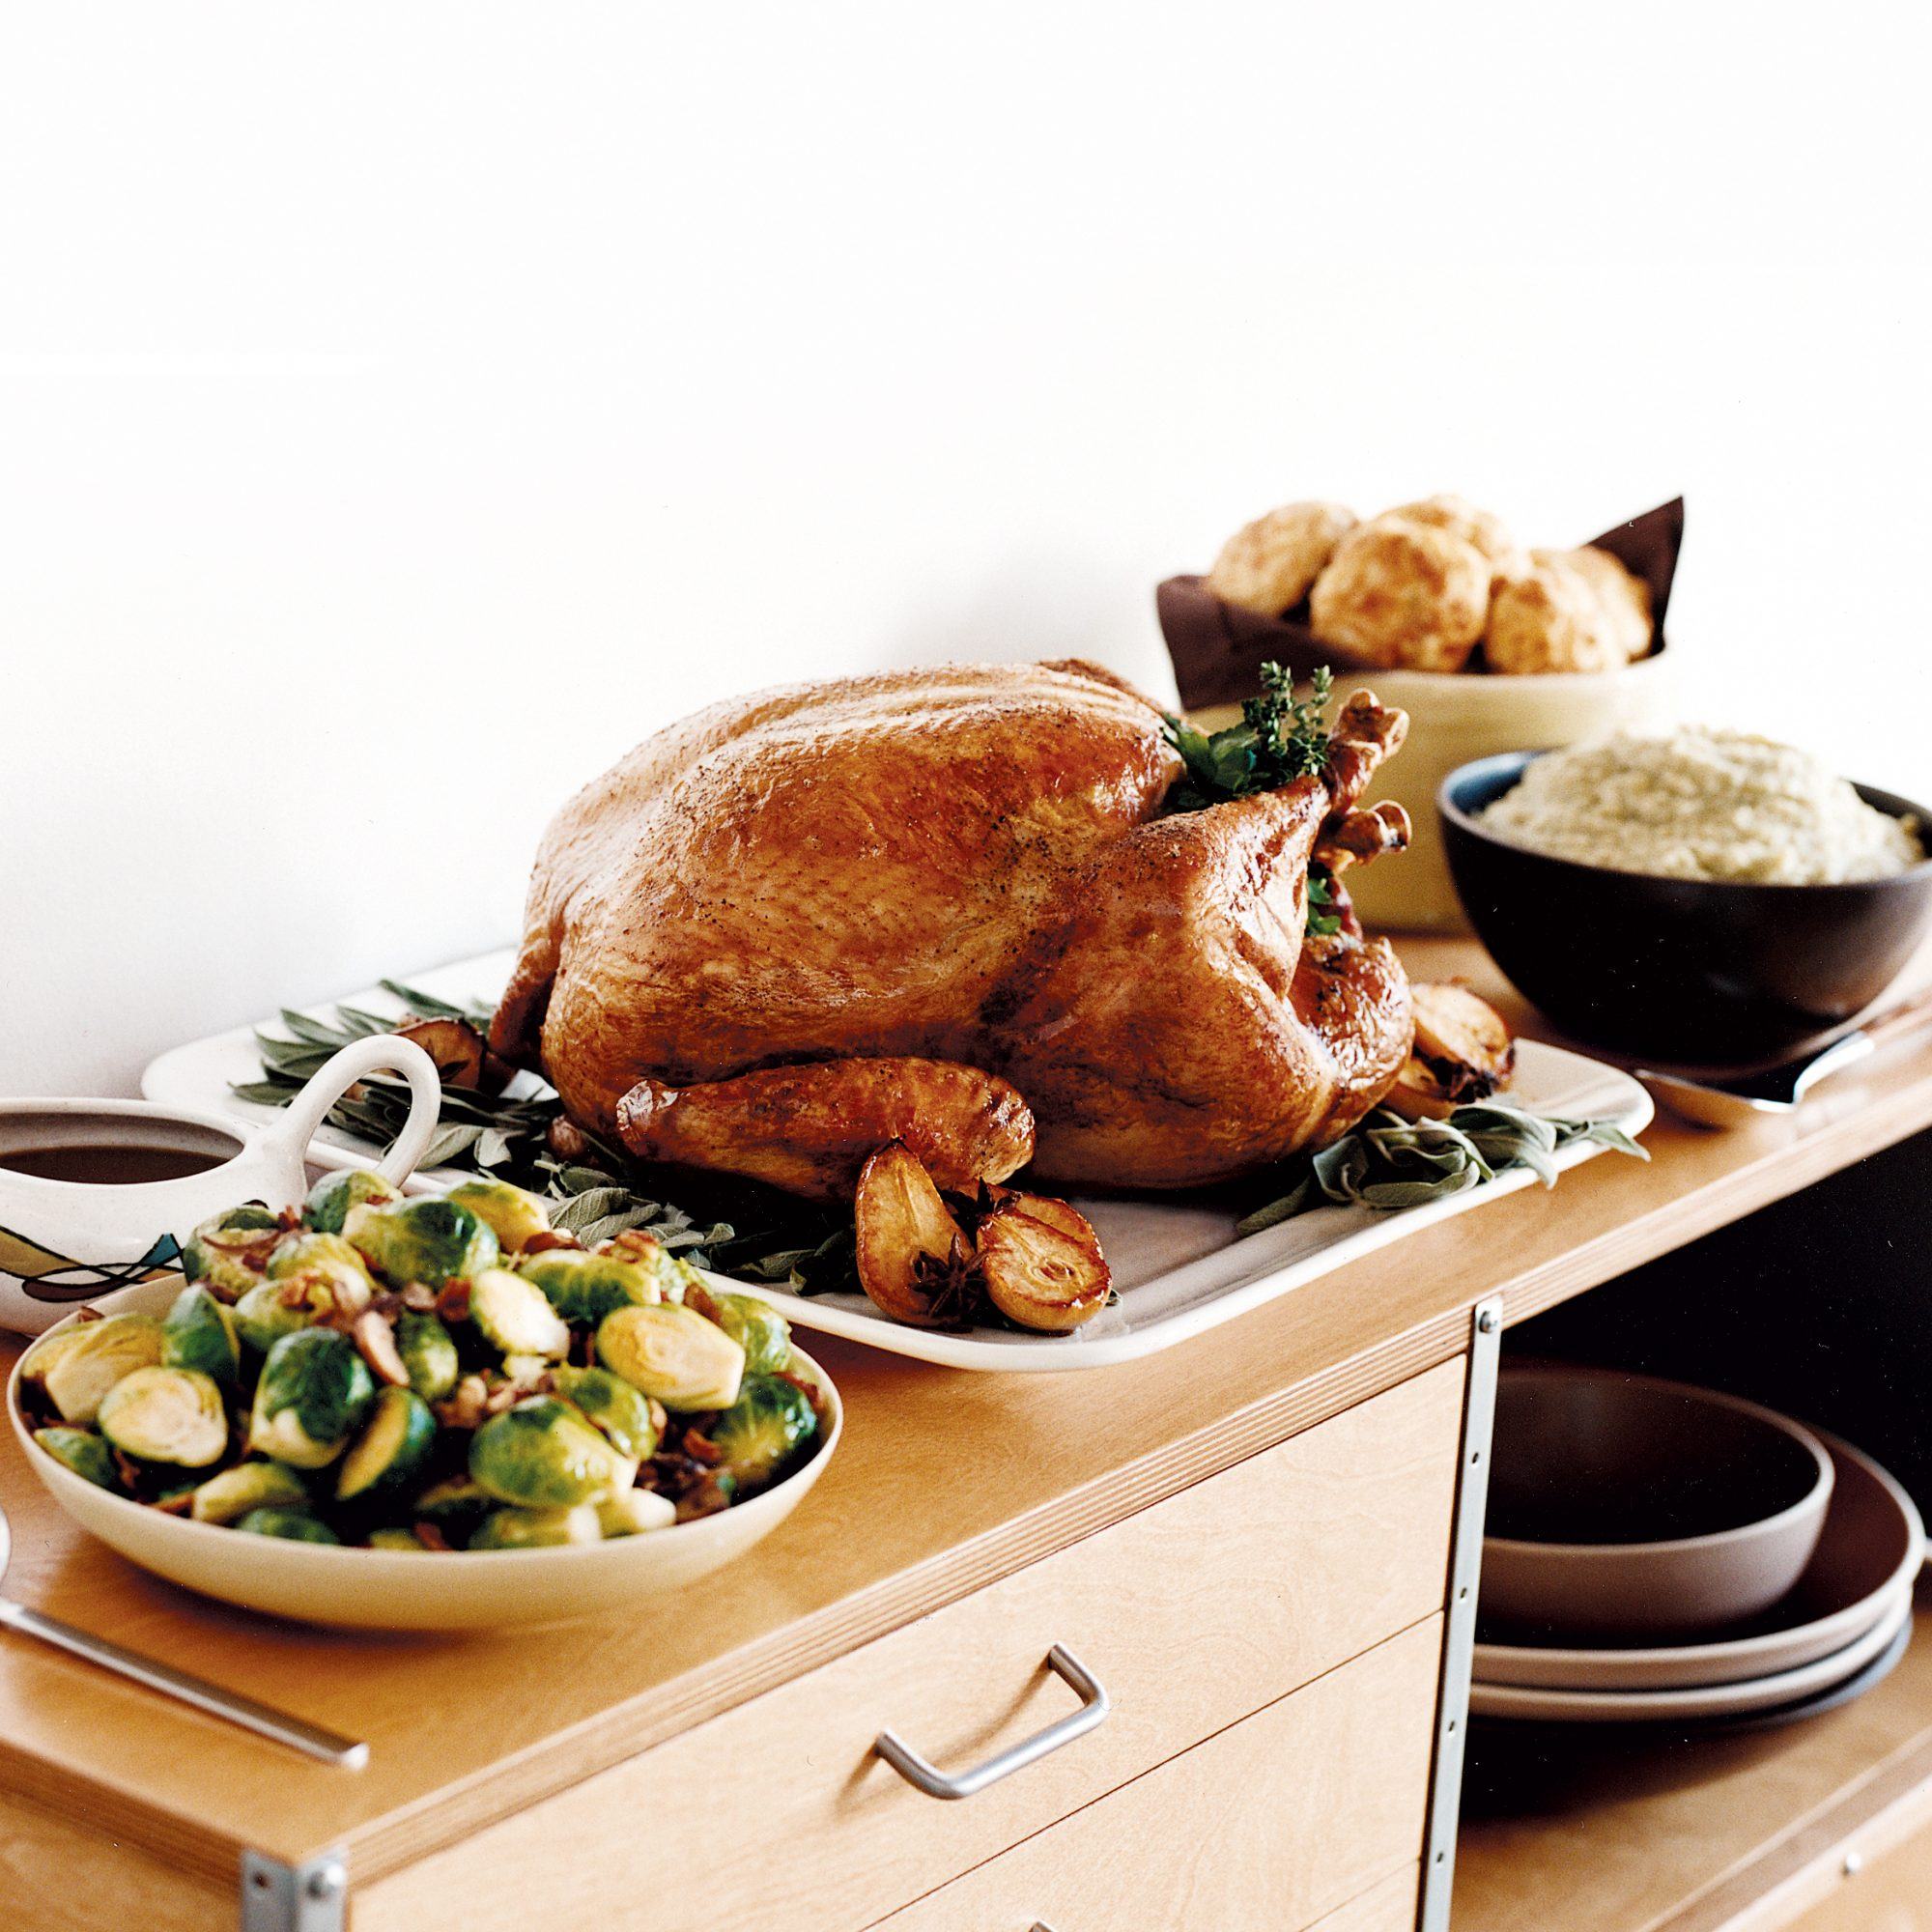 Discussion on this topic: Roasted Turkey Gravy, roasted-turkey-gravy/